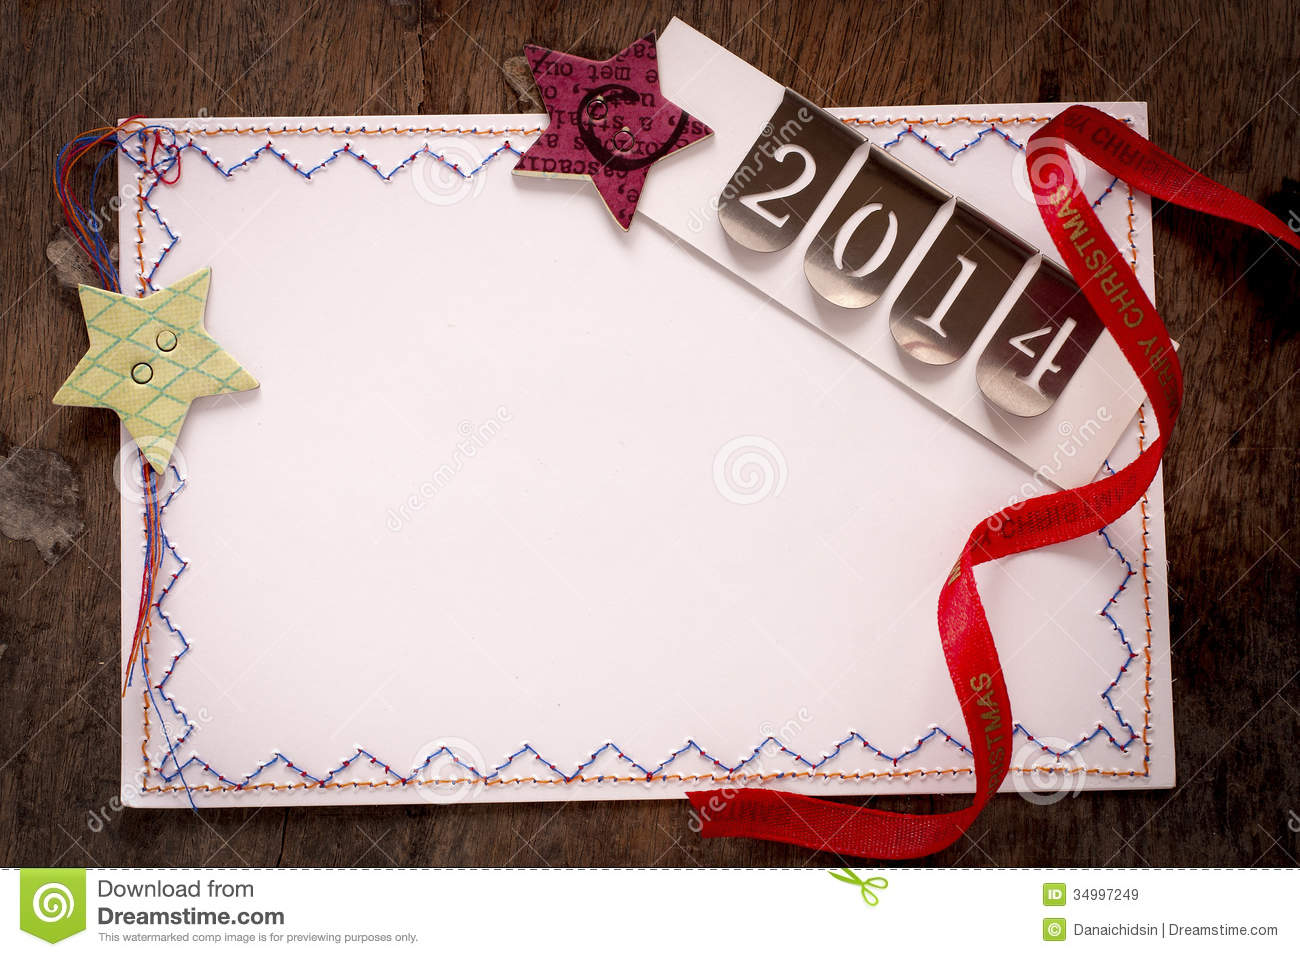 New year and christmas greeting cards stock image image of holiday new year and christmas greeting cards m4hsunfo Choice Image